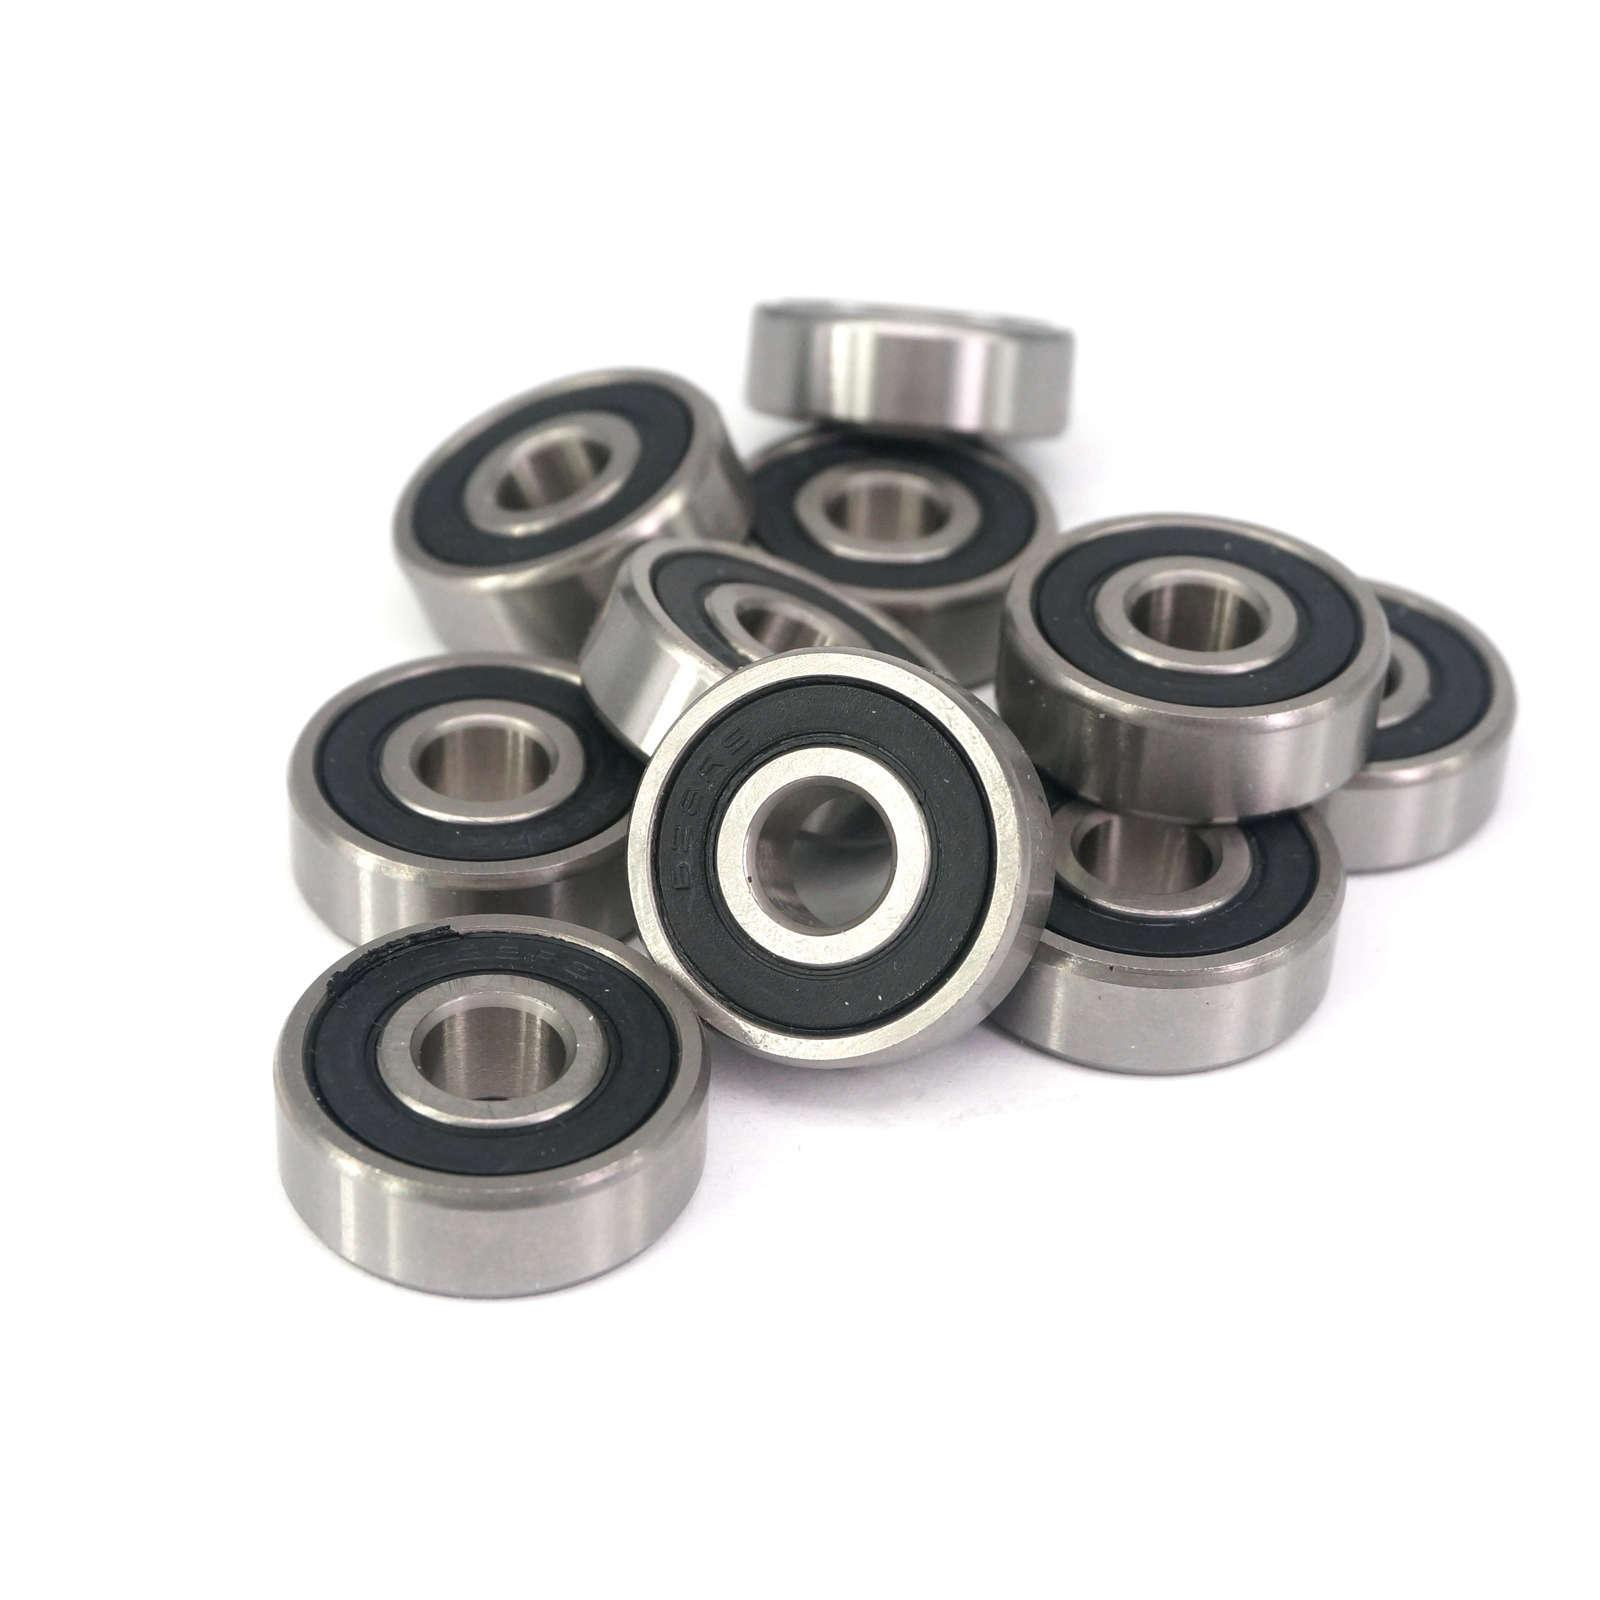 628-2RS 8x24x8mm ABEC1 Thin-wall Shielded Deep Groove Ball Bearing image